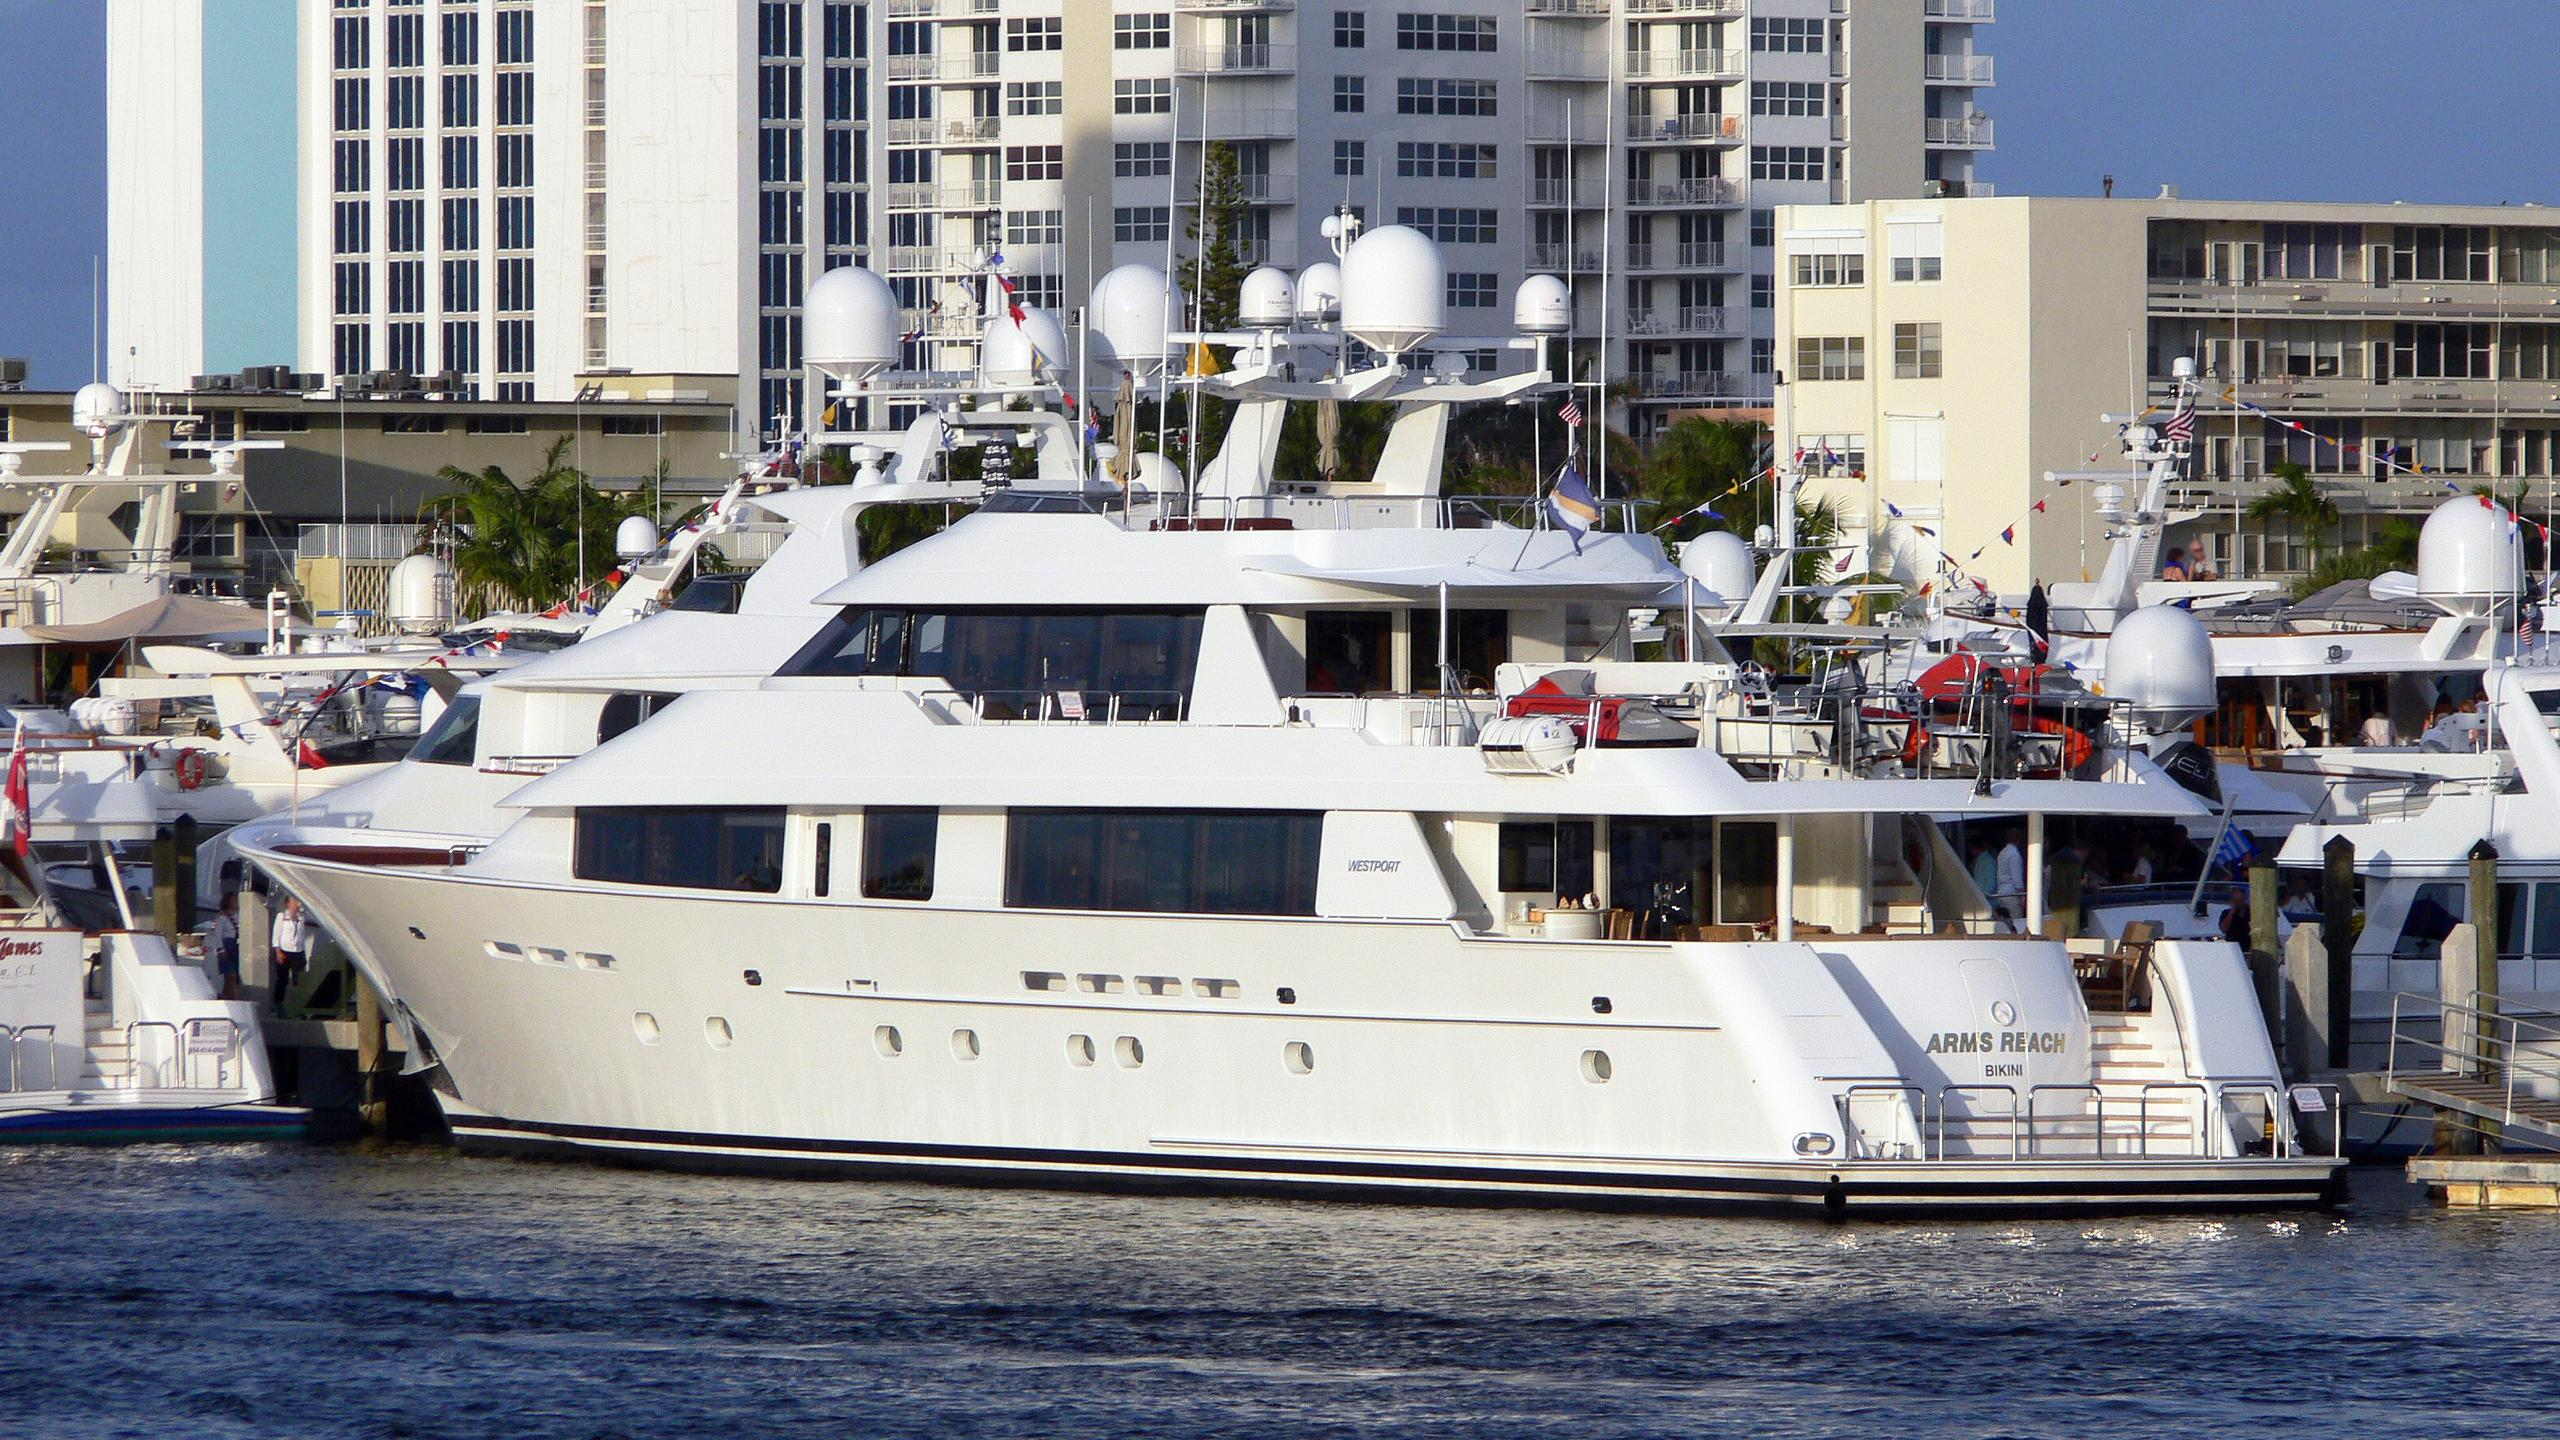 arms-reach-motor-yacht-westport-130-2004-40m-moored-half-profile